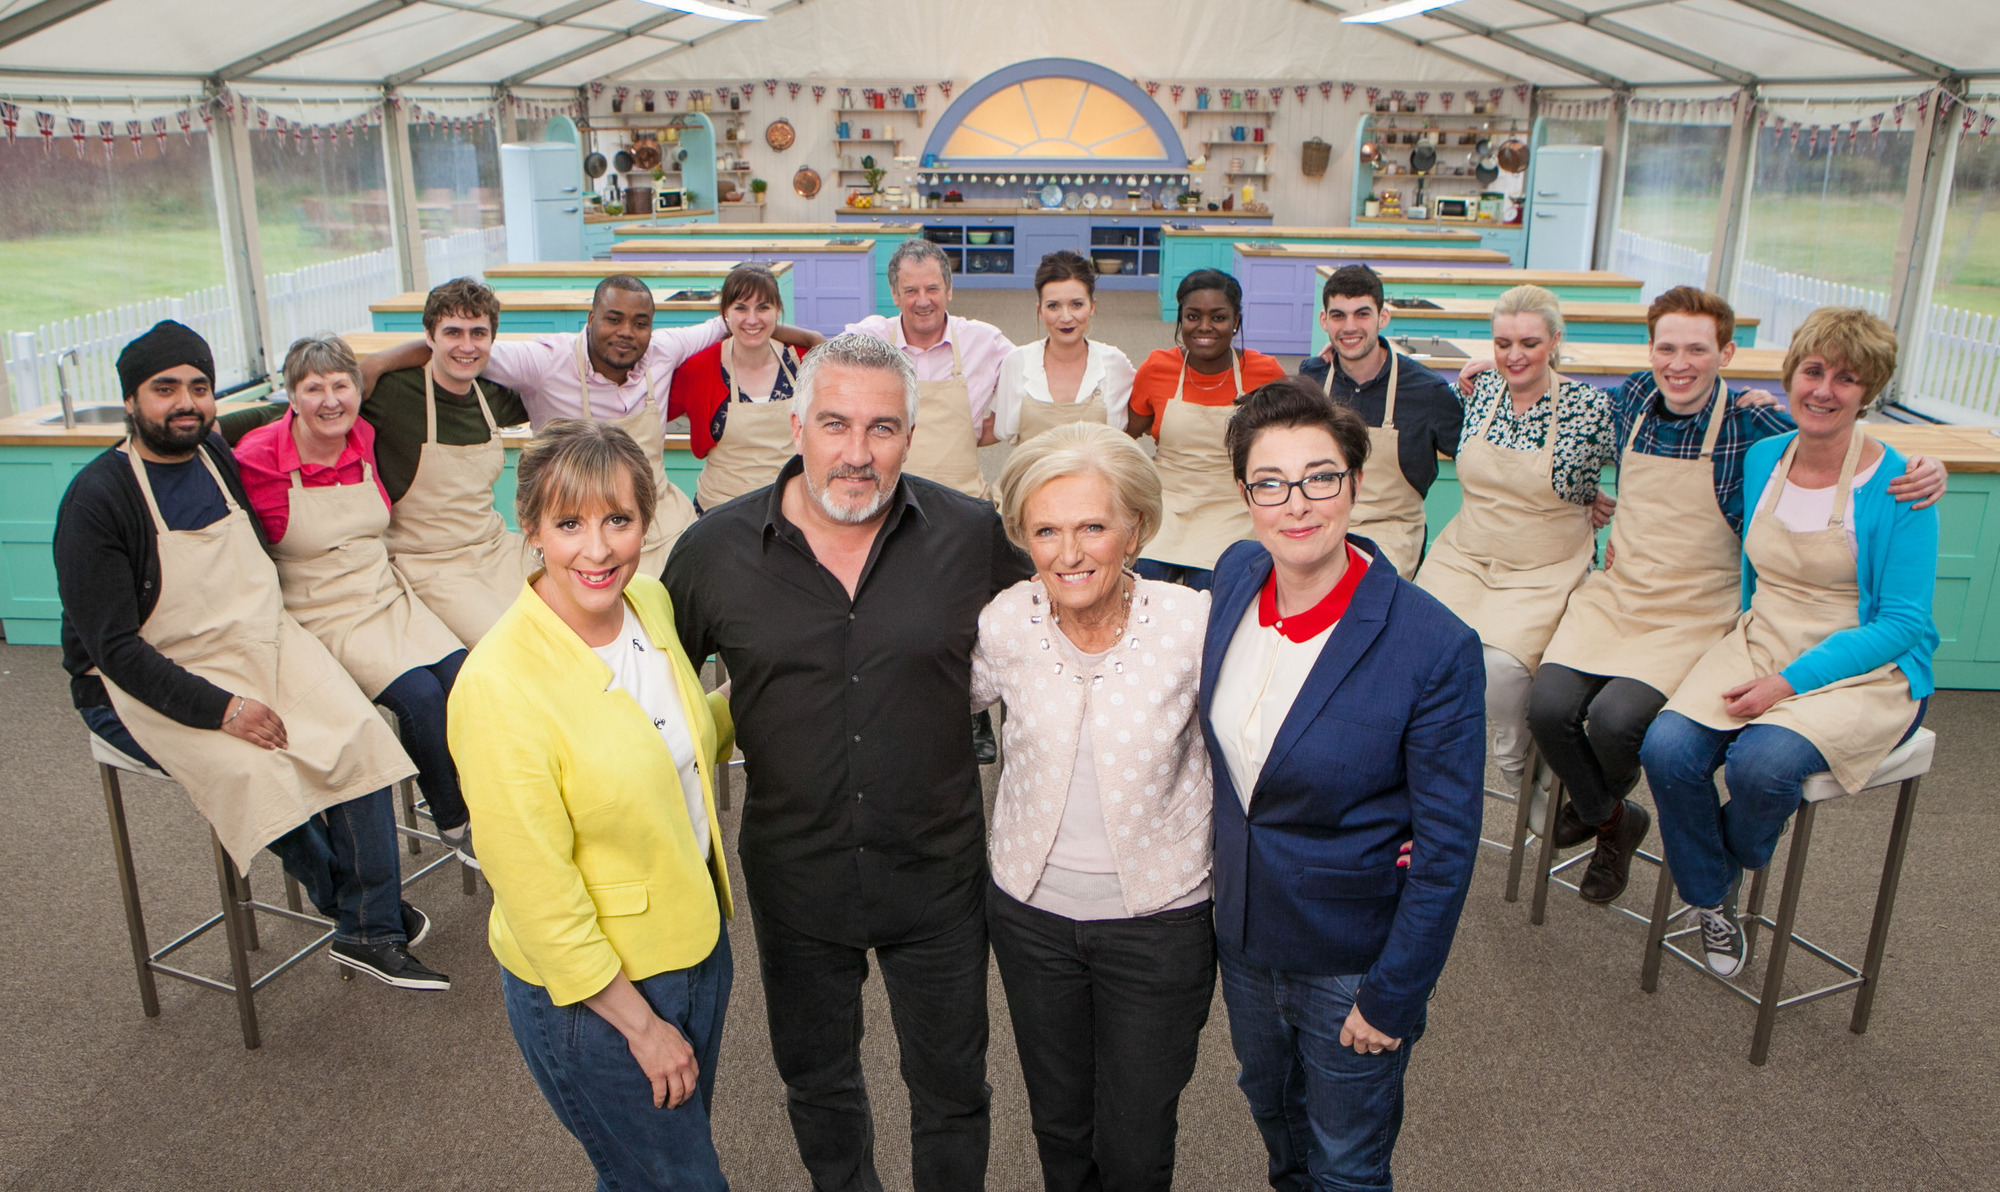 WARNING: Embargoed for publication until 00:00:01 on 16/08/2016 - Programme Name: The Great British Bake Off 2016 - TX: n/a - Episode: n/a (No. n/a) - Picture Shows: **NOT FOR PUBLICATION BEFORE 00:01 HOURS TUESDAY 16TH AUGUST 2016** All the bakers with Mel Giedroyc, Paul Hollywood, Mary Berry and Sue Perkins Bakers left to right: Rav, Val, Tom, Selasi, Kate, Lee, Candice, Benjamina, Michael, Louise, Andrew & Jane - (C) Love Productions - Photographer: Mark Bourdillon